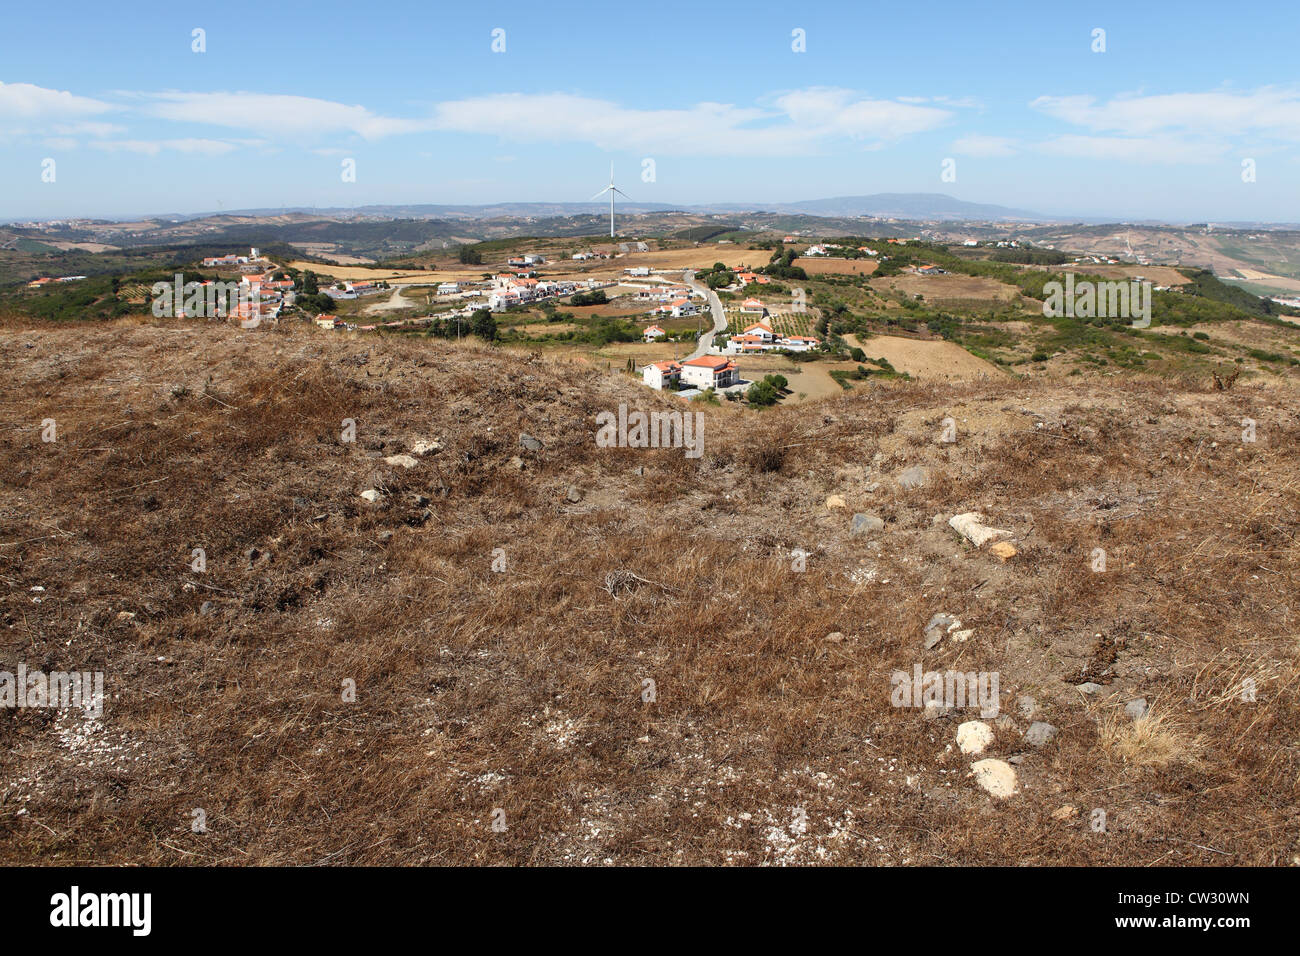 Countryside seen over the remains of the earthworks of the Lines of Torres Vedras around Lisbon, Portugal. - Stock Image